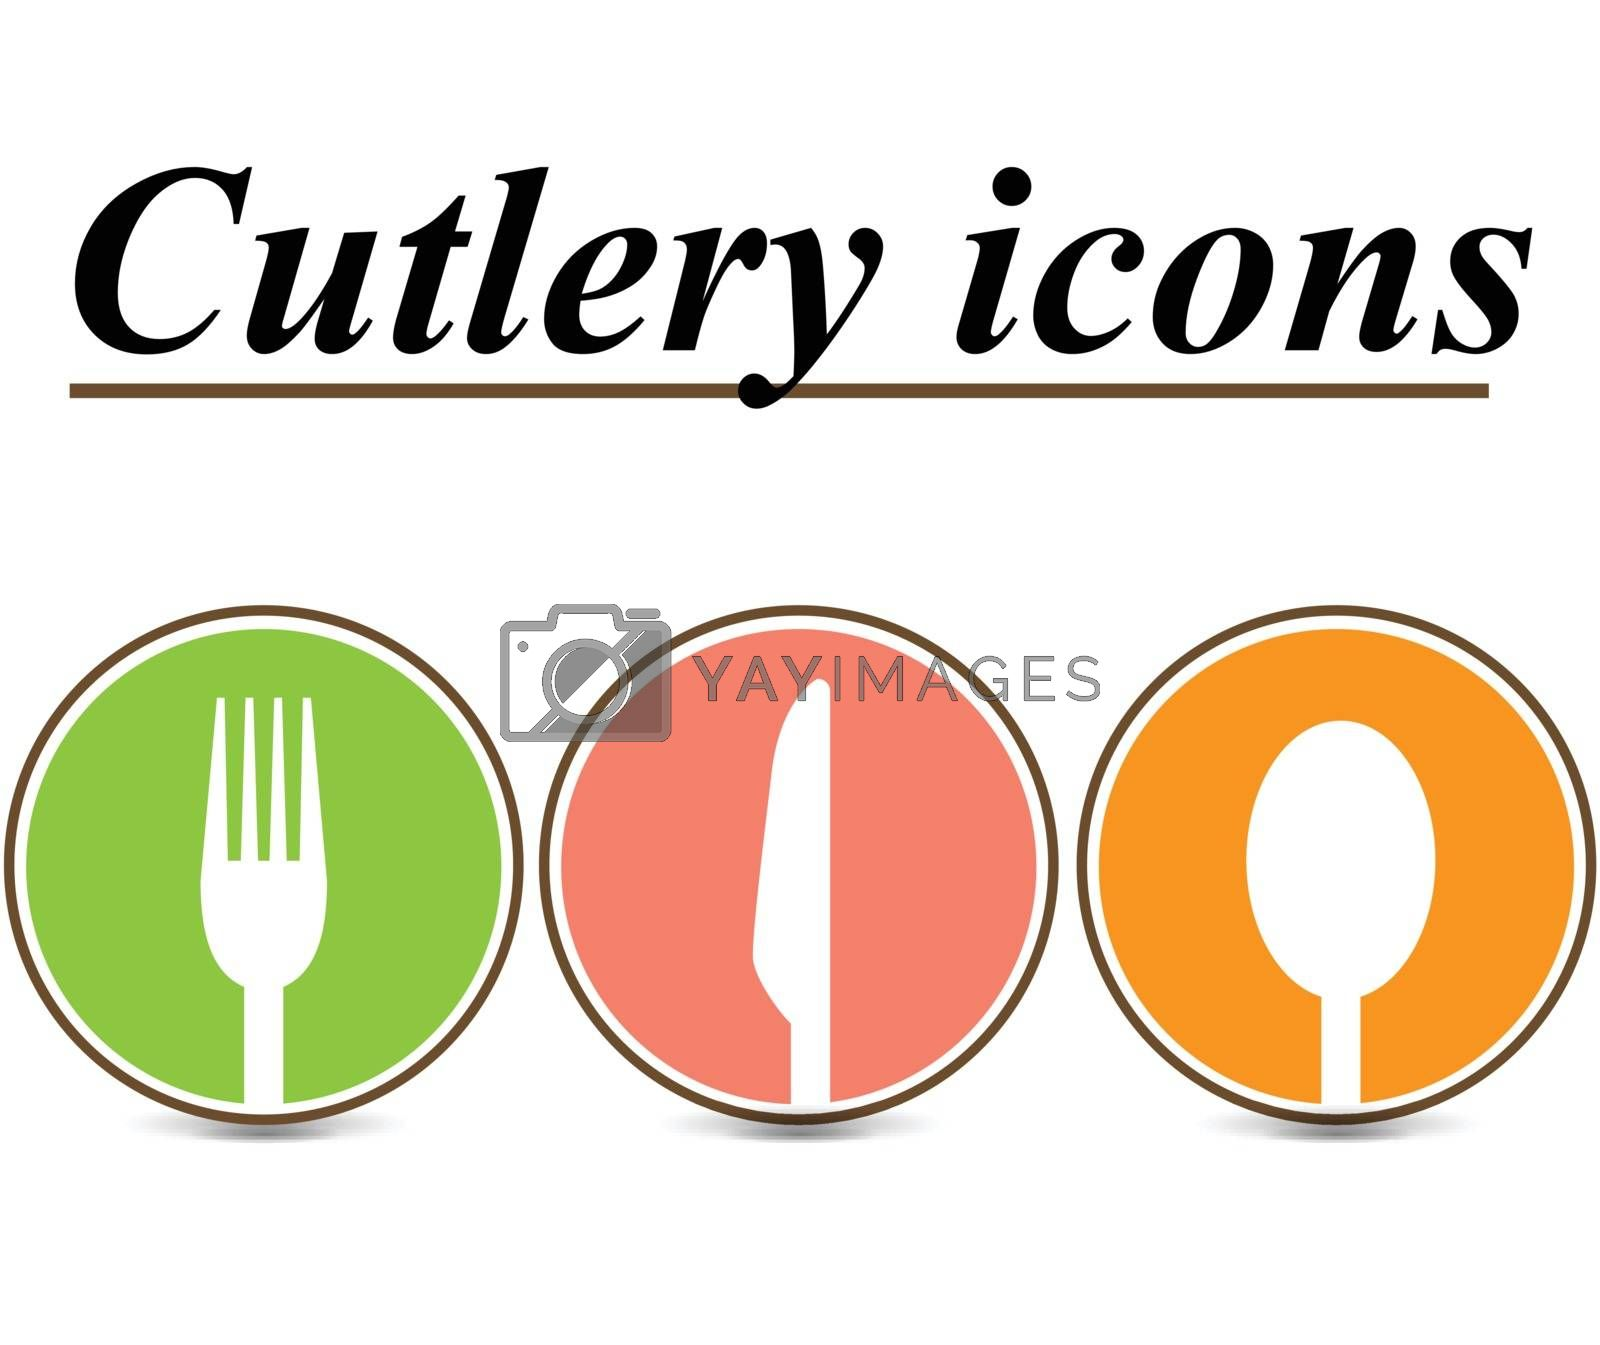 Royalty free image of three cutlery icons by nickylarson974